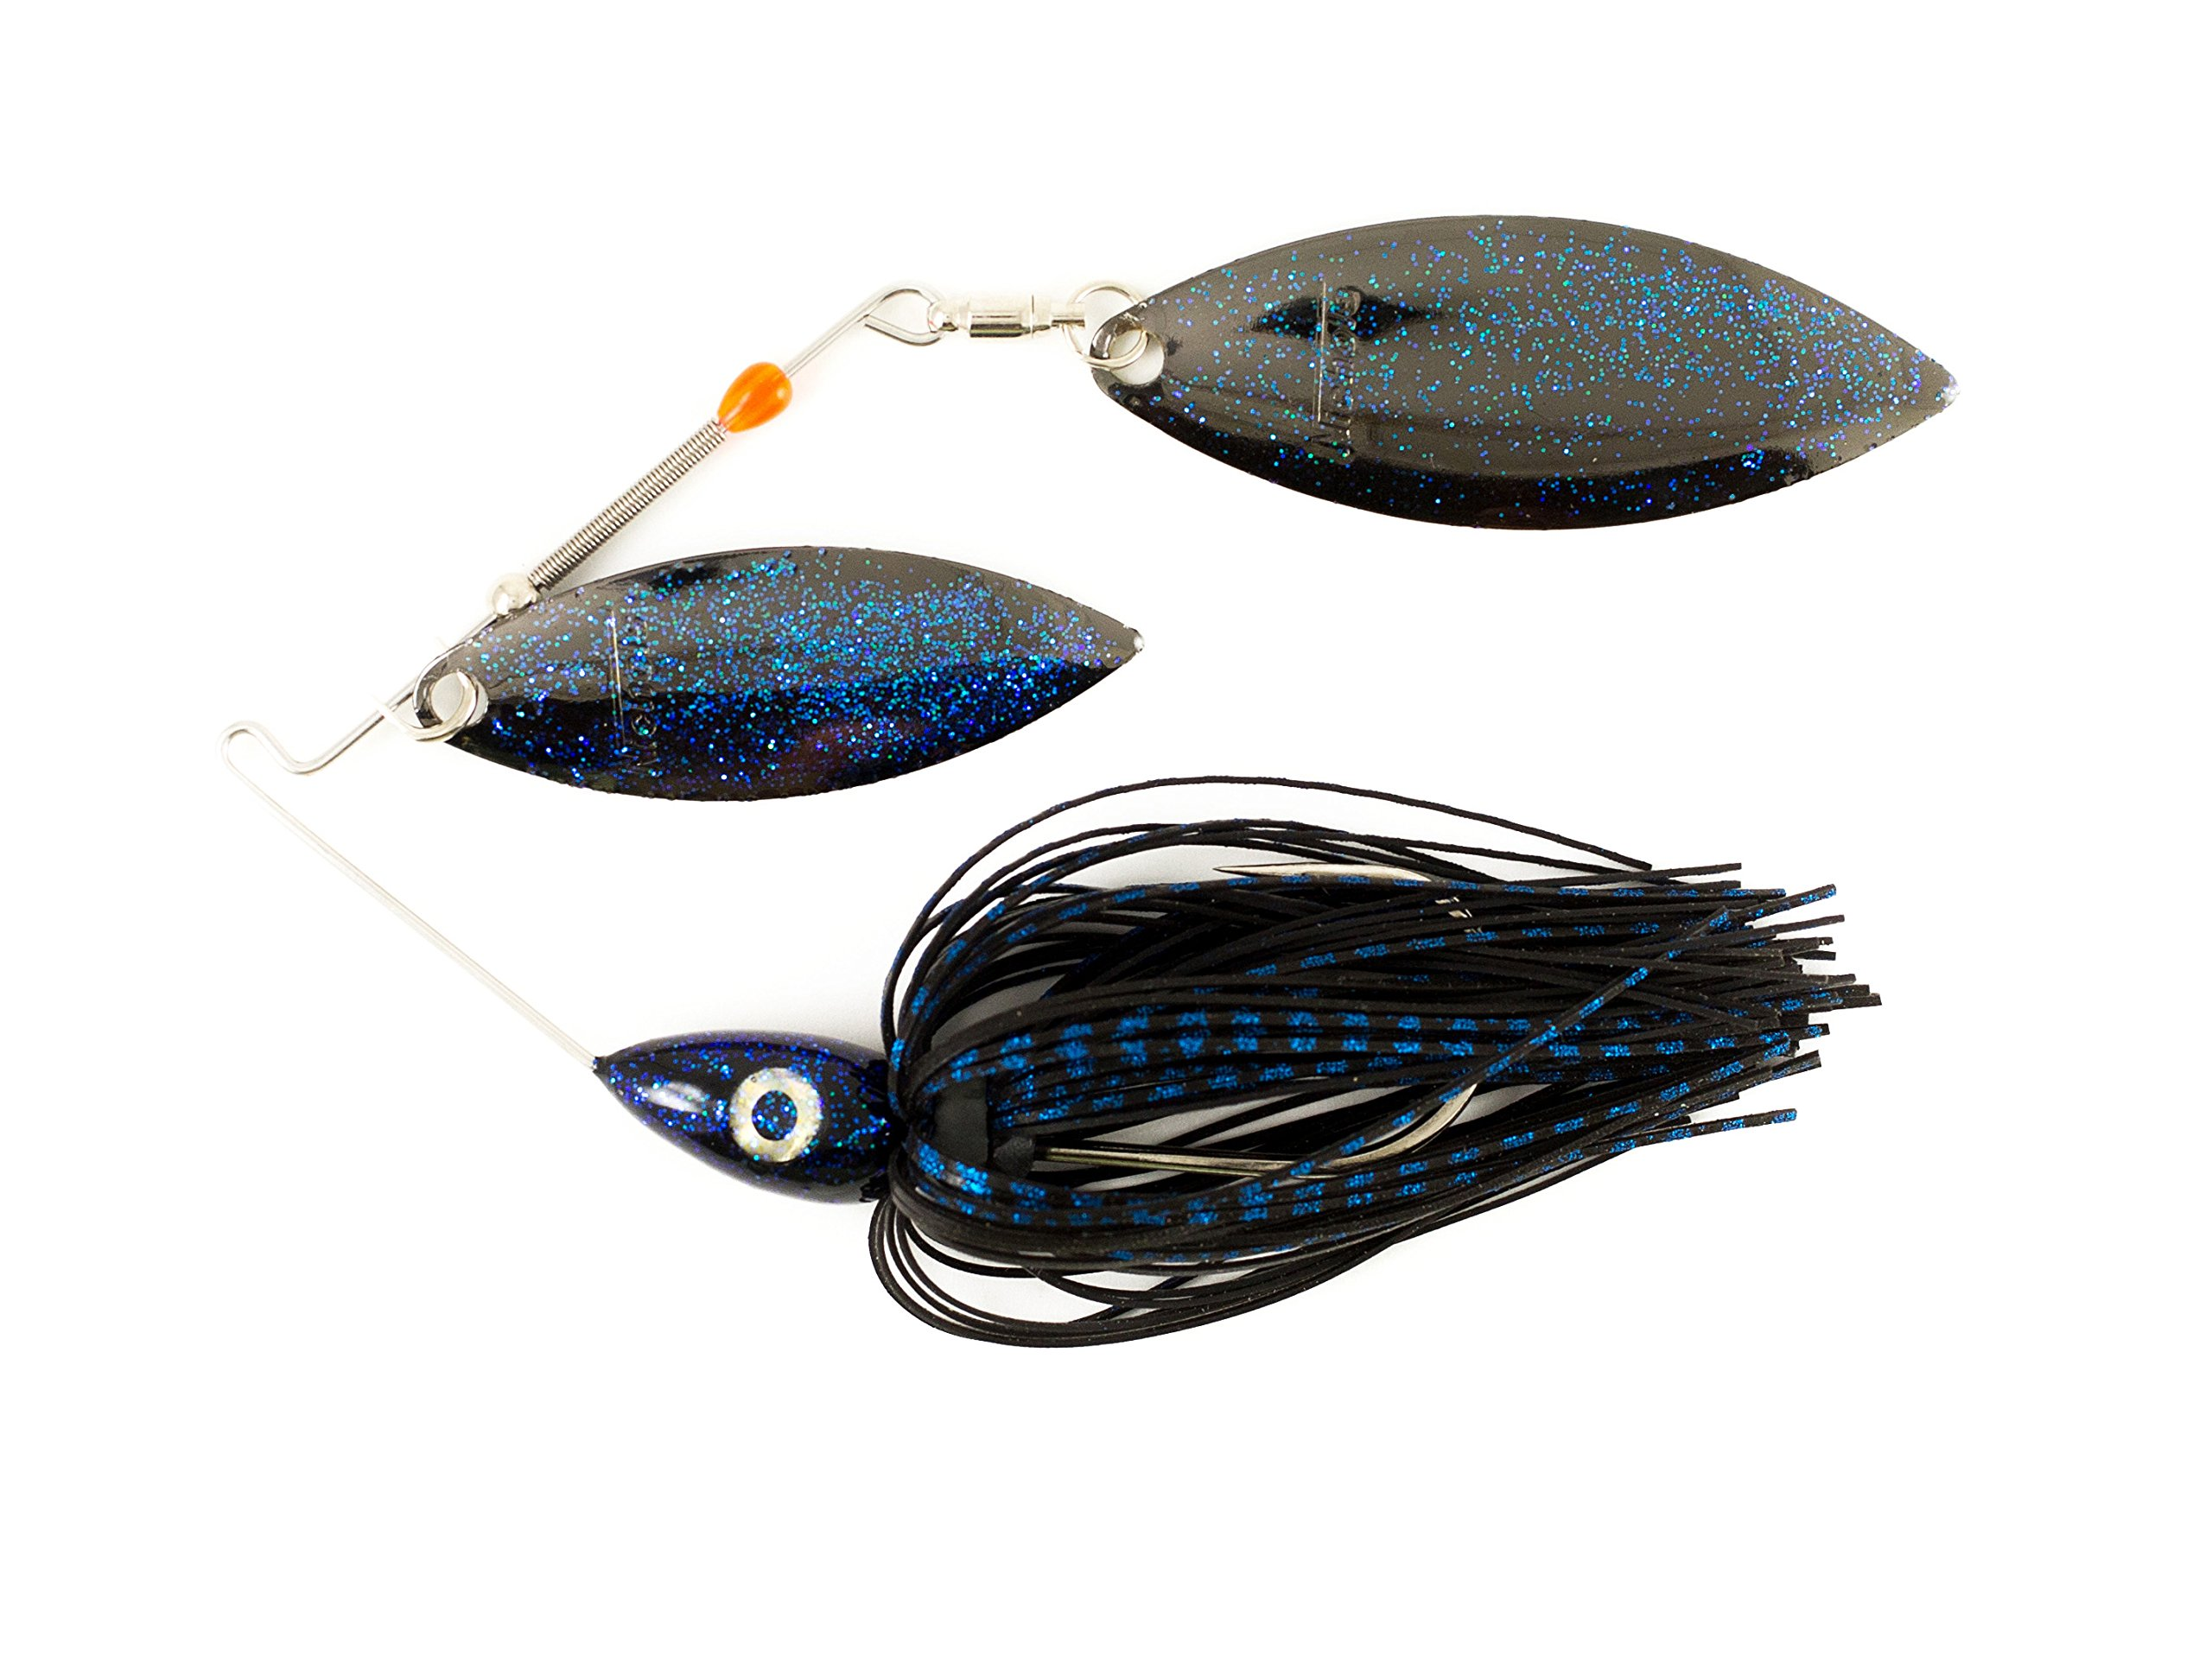 Nichols Lures Pulsator Metal Flake Double Willow Spinnerbait, Black/Blue, 1/2-Ounce/.44-Magnum by Nichols Lures